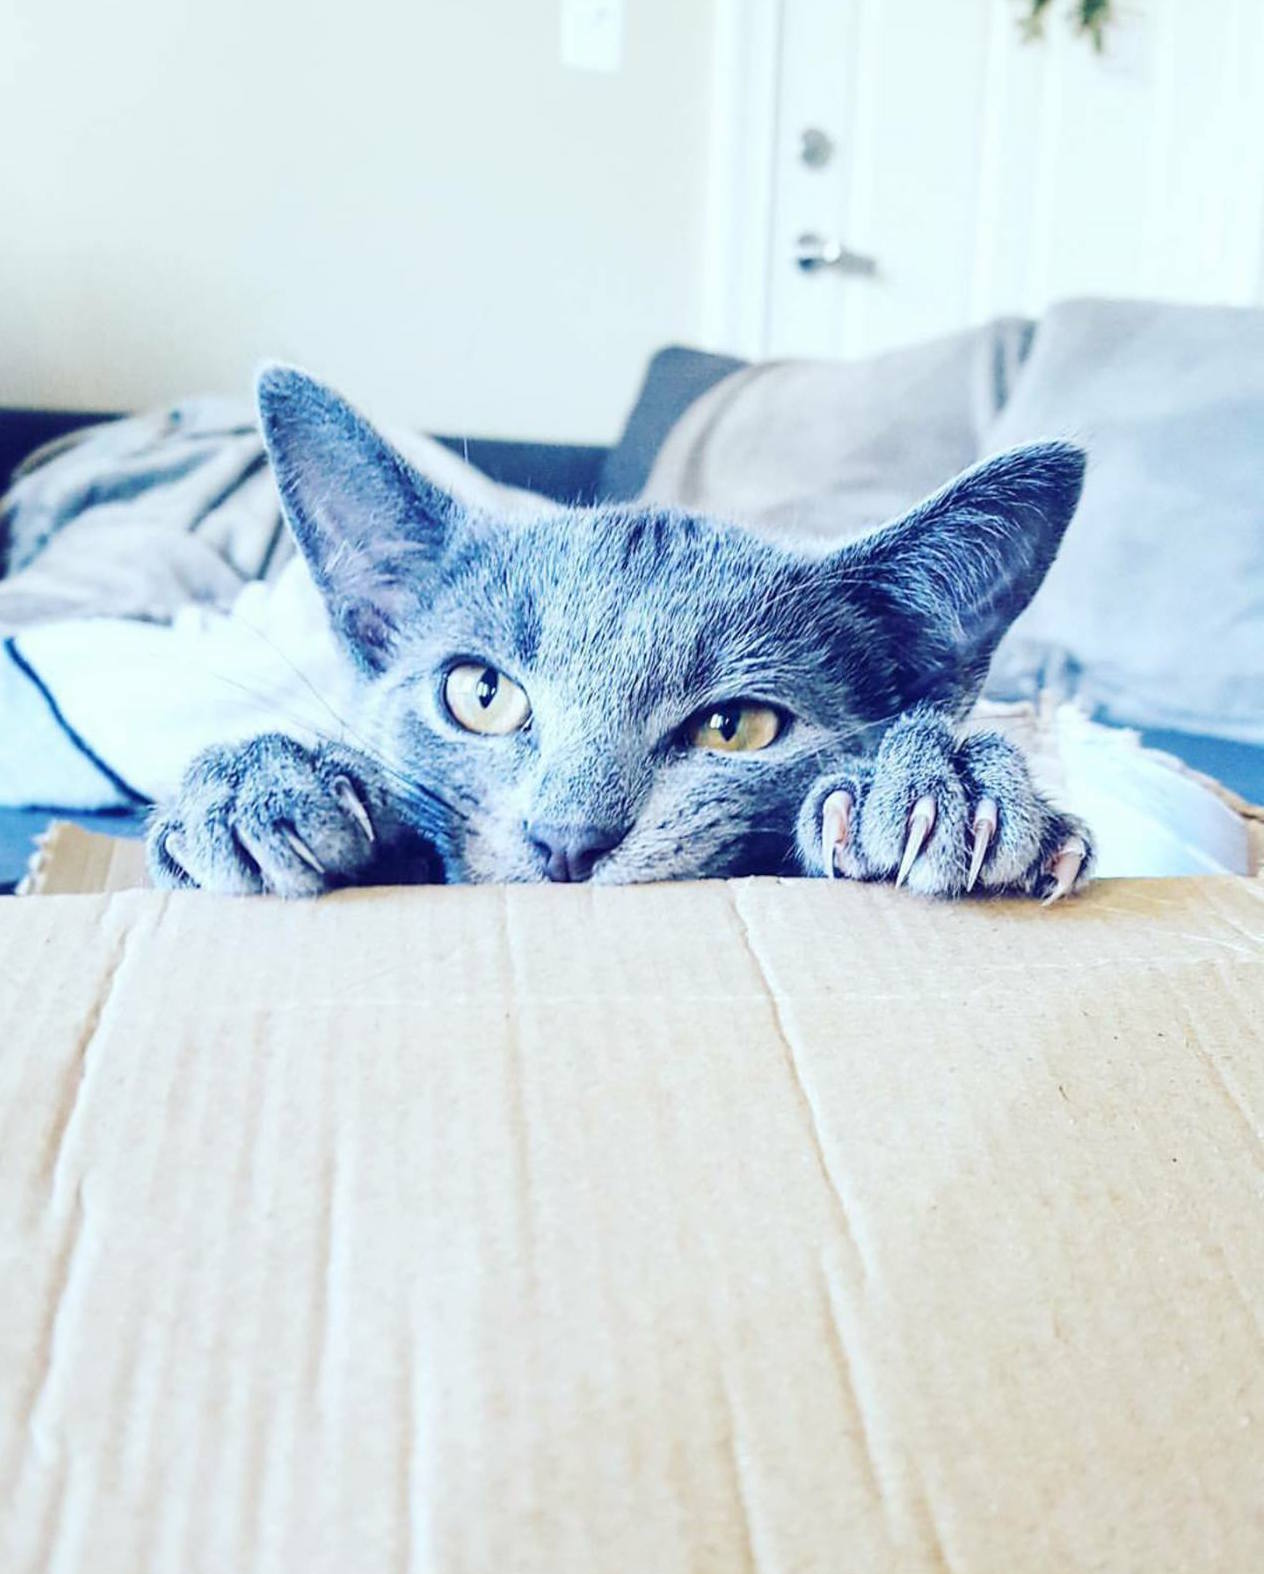 I also like boxes!